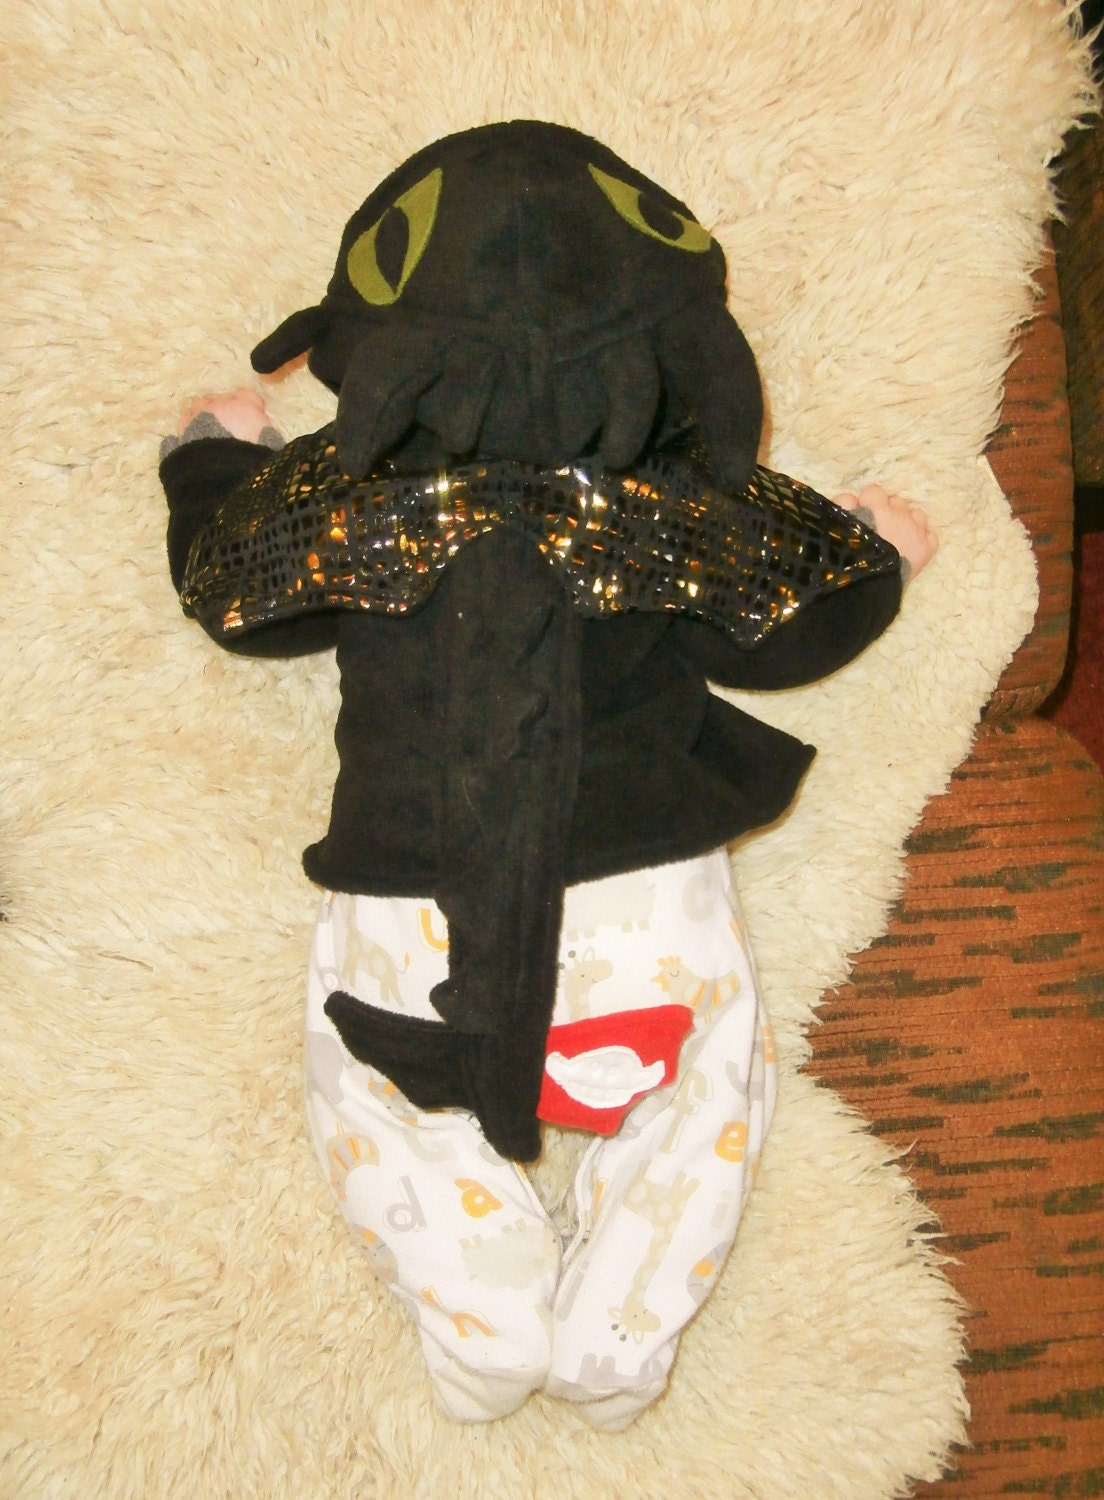 baby toothless  u0026 39 style u0026 39  dragon hoodie how to train by